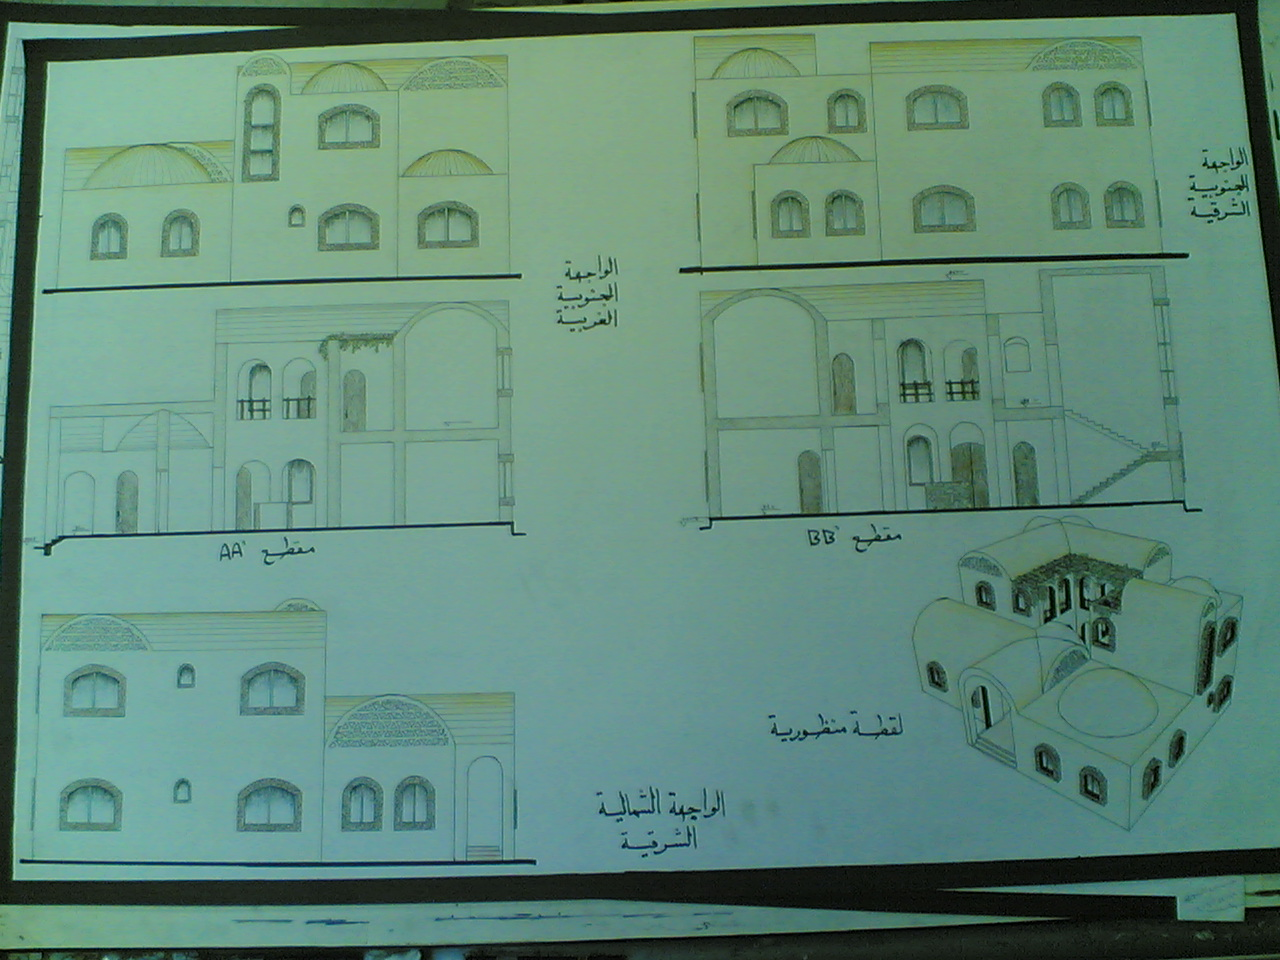 Arabic Traditional House Housin Alhibah Inect. Status School Project. Wiring. A Diagram Of A House Arabic At Scoala.co